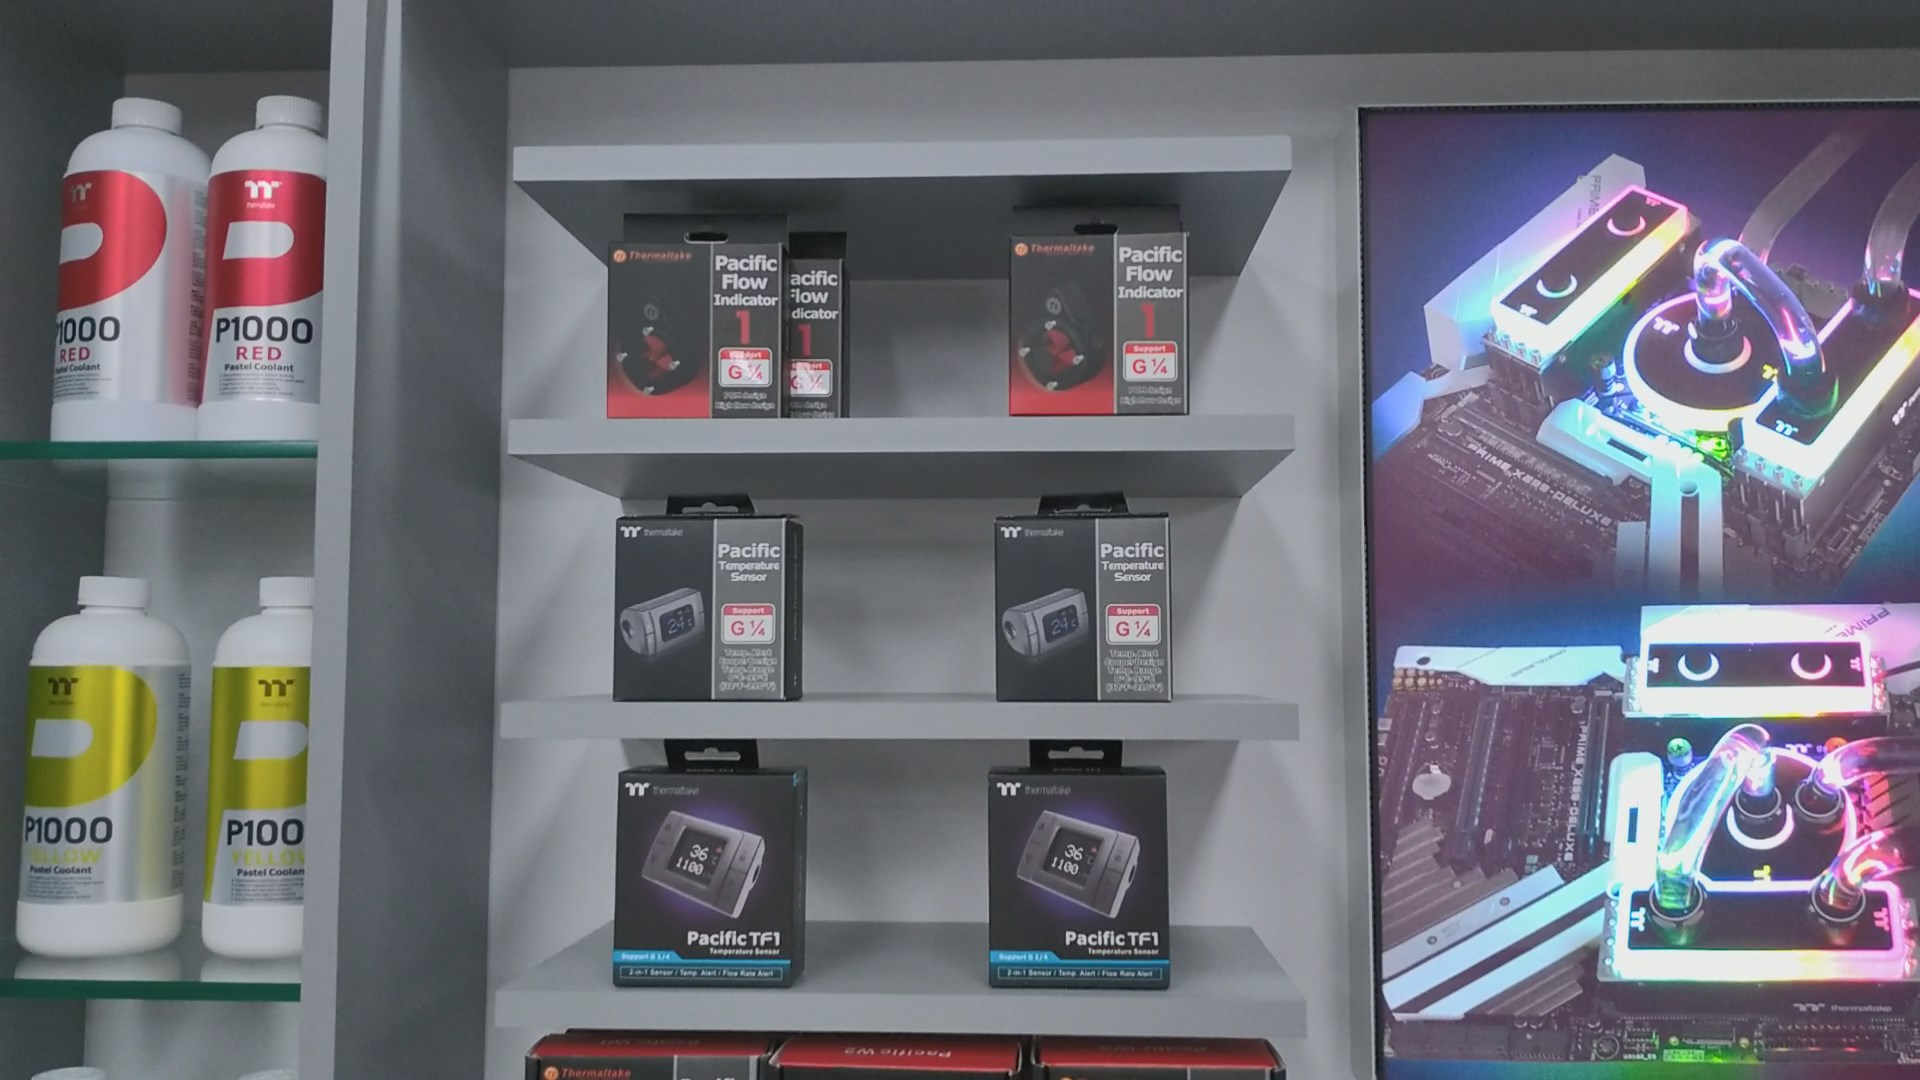 Thermaltake Liquid Cooling Gaming System Flagship Store - Computex 2019 22